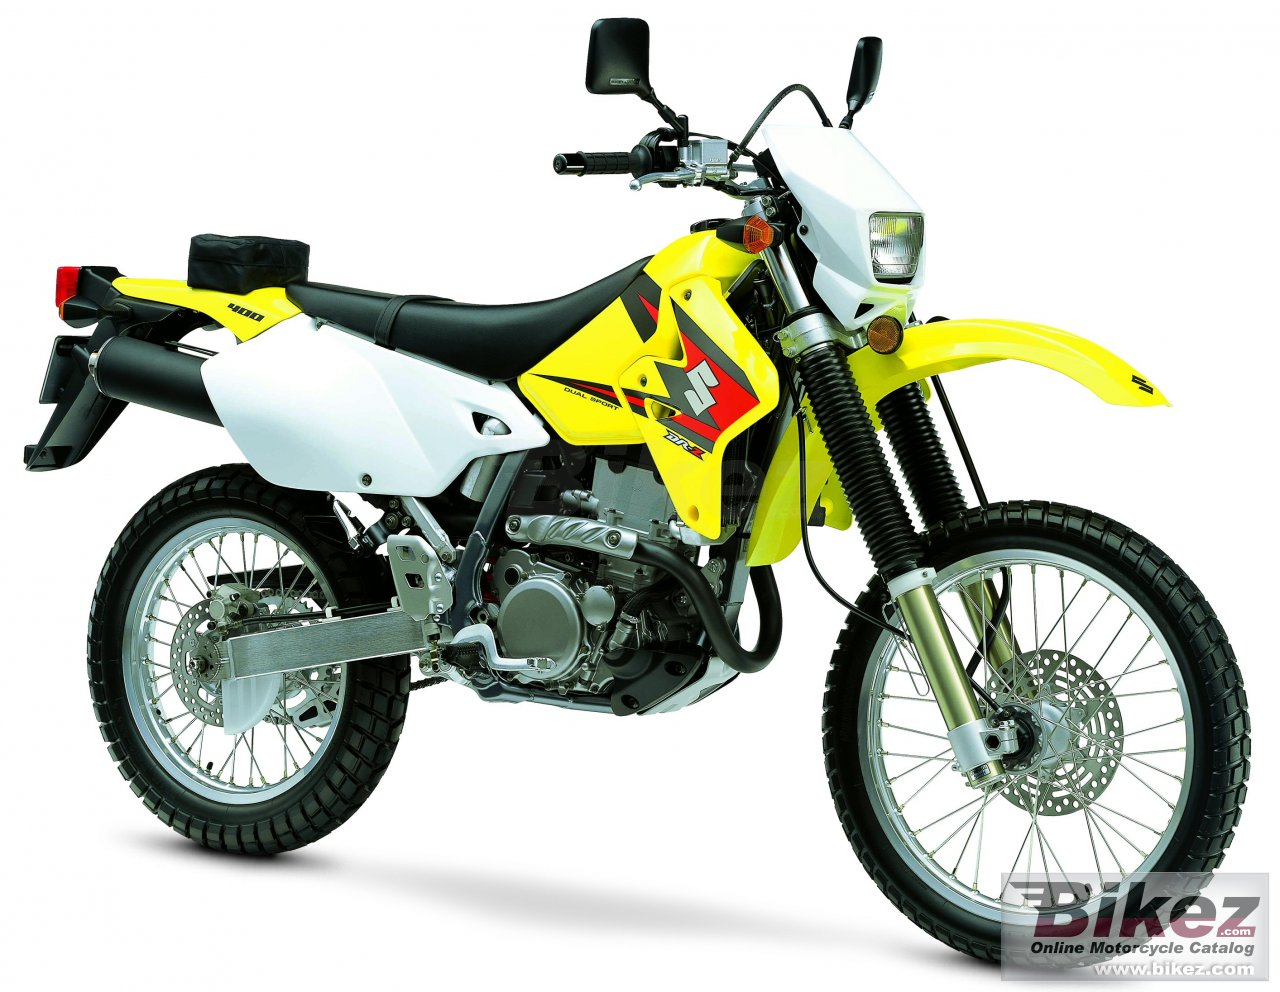 Big Suzuki dr-z 400 s picture and wallpaper from Bikez.com